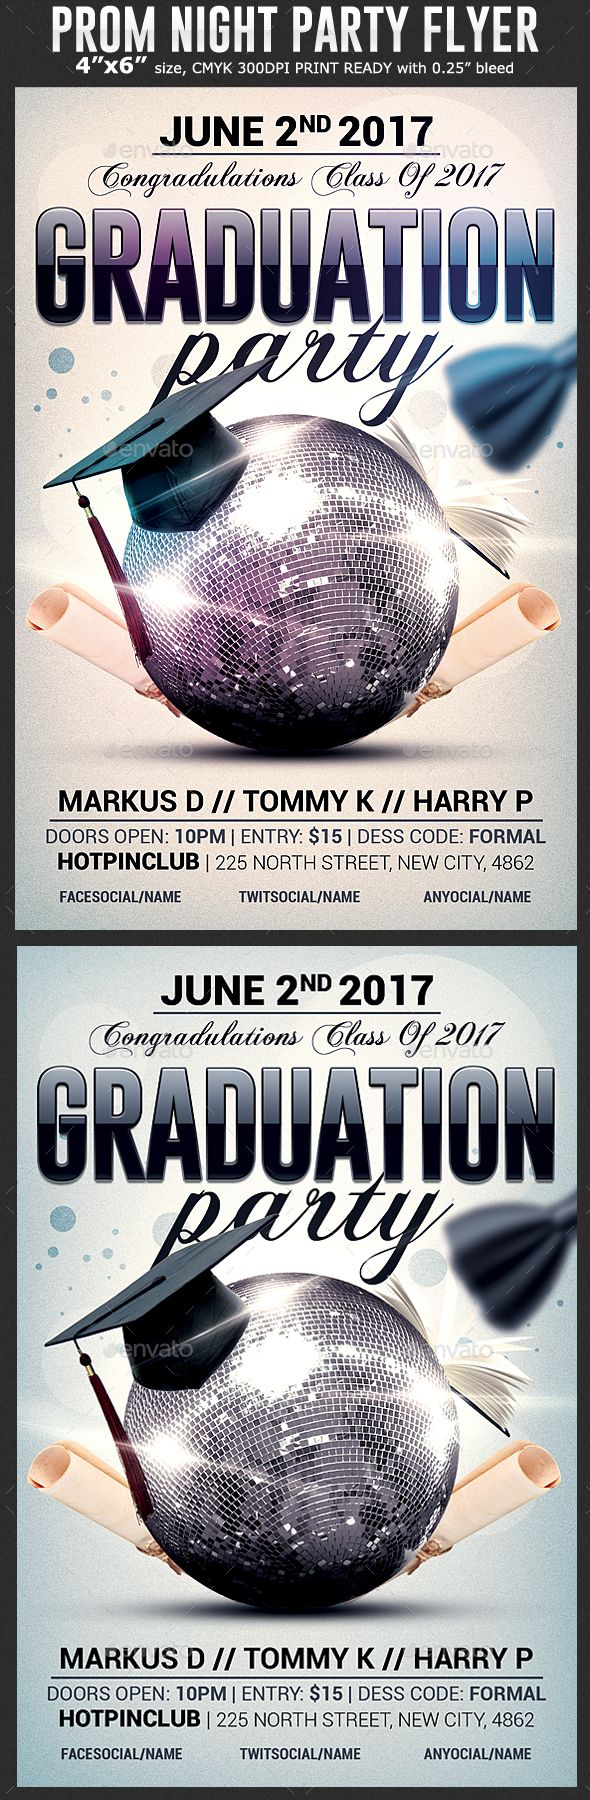 Graduation Party Flyer Template | Party flyer, Flyer template and ...